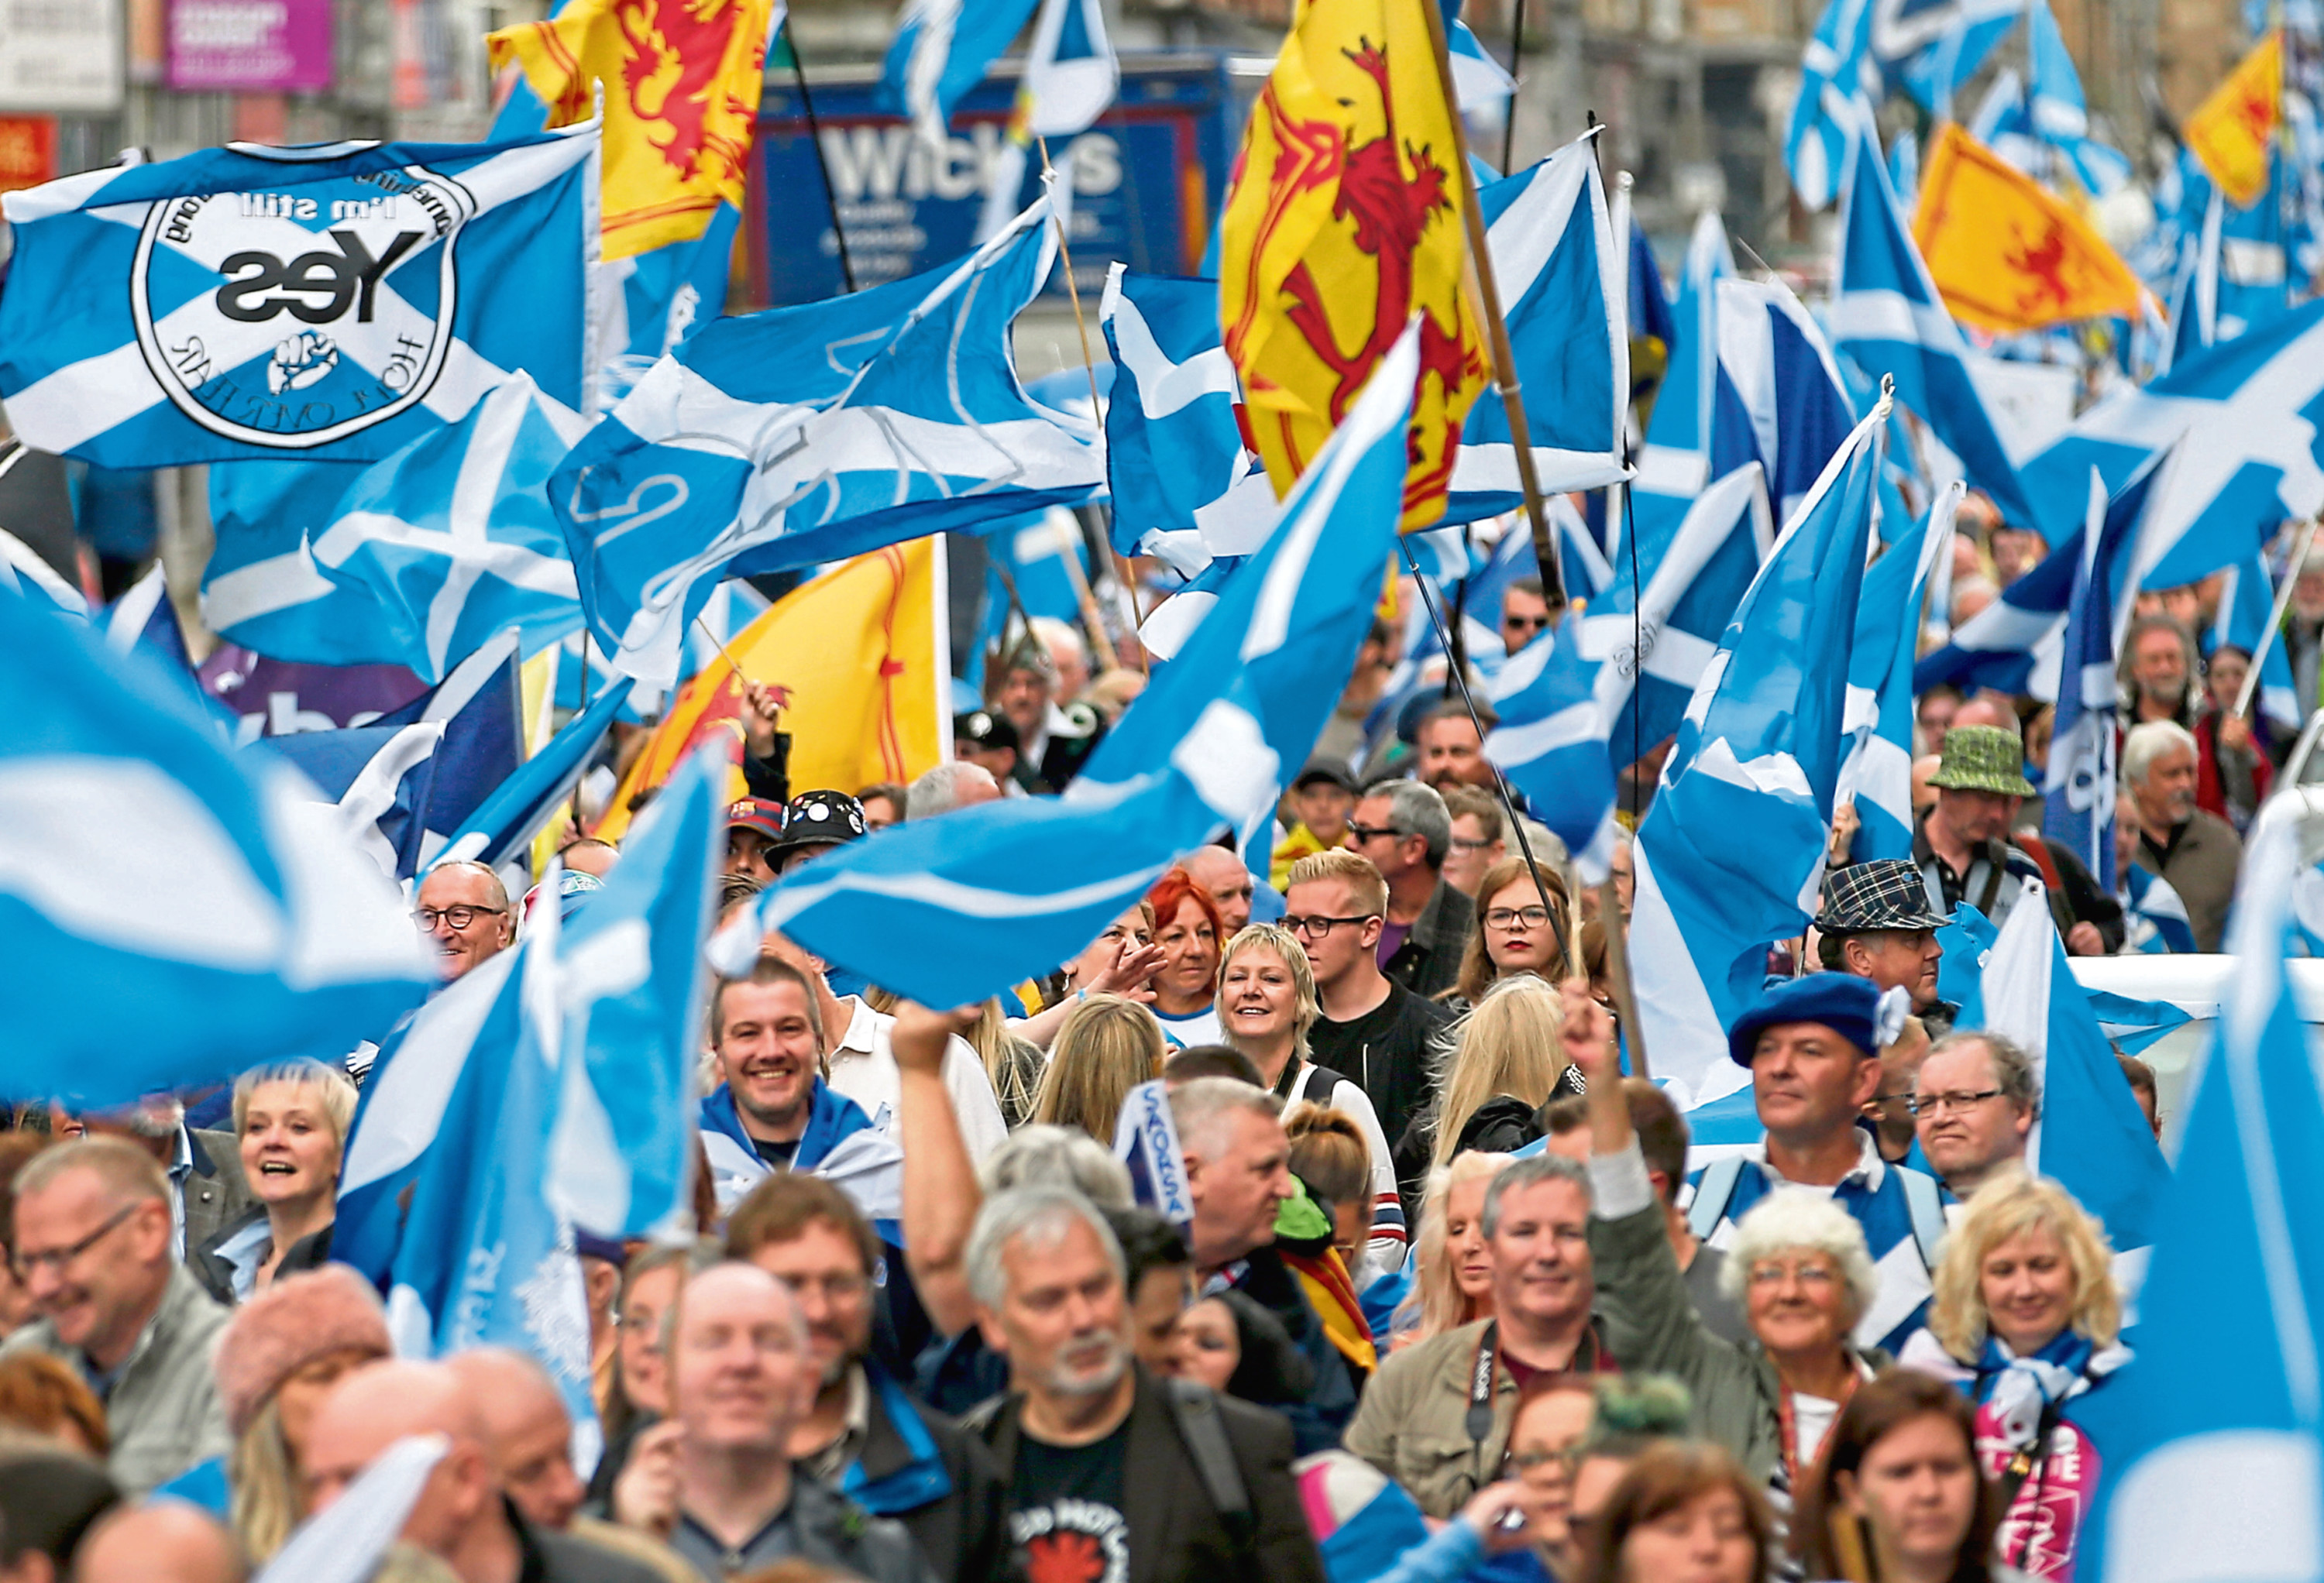 A previous All Under One Banner March in Glasgow